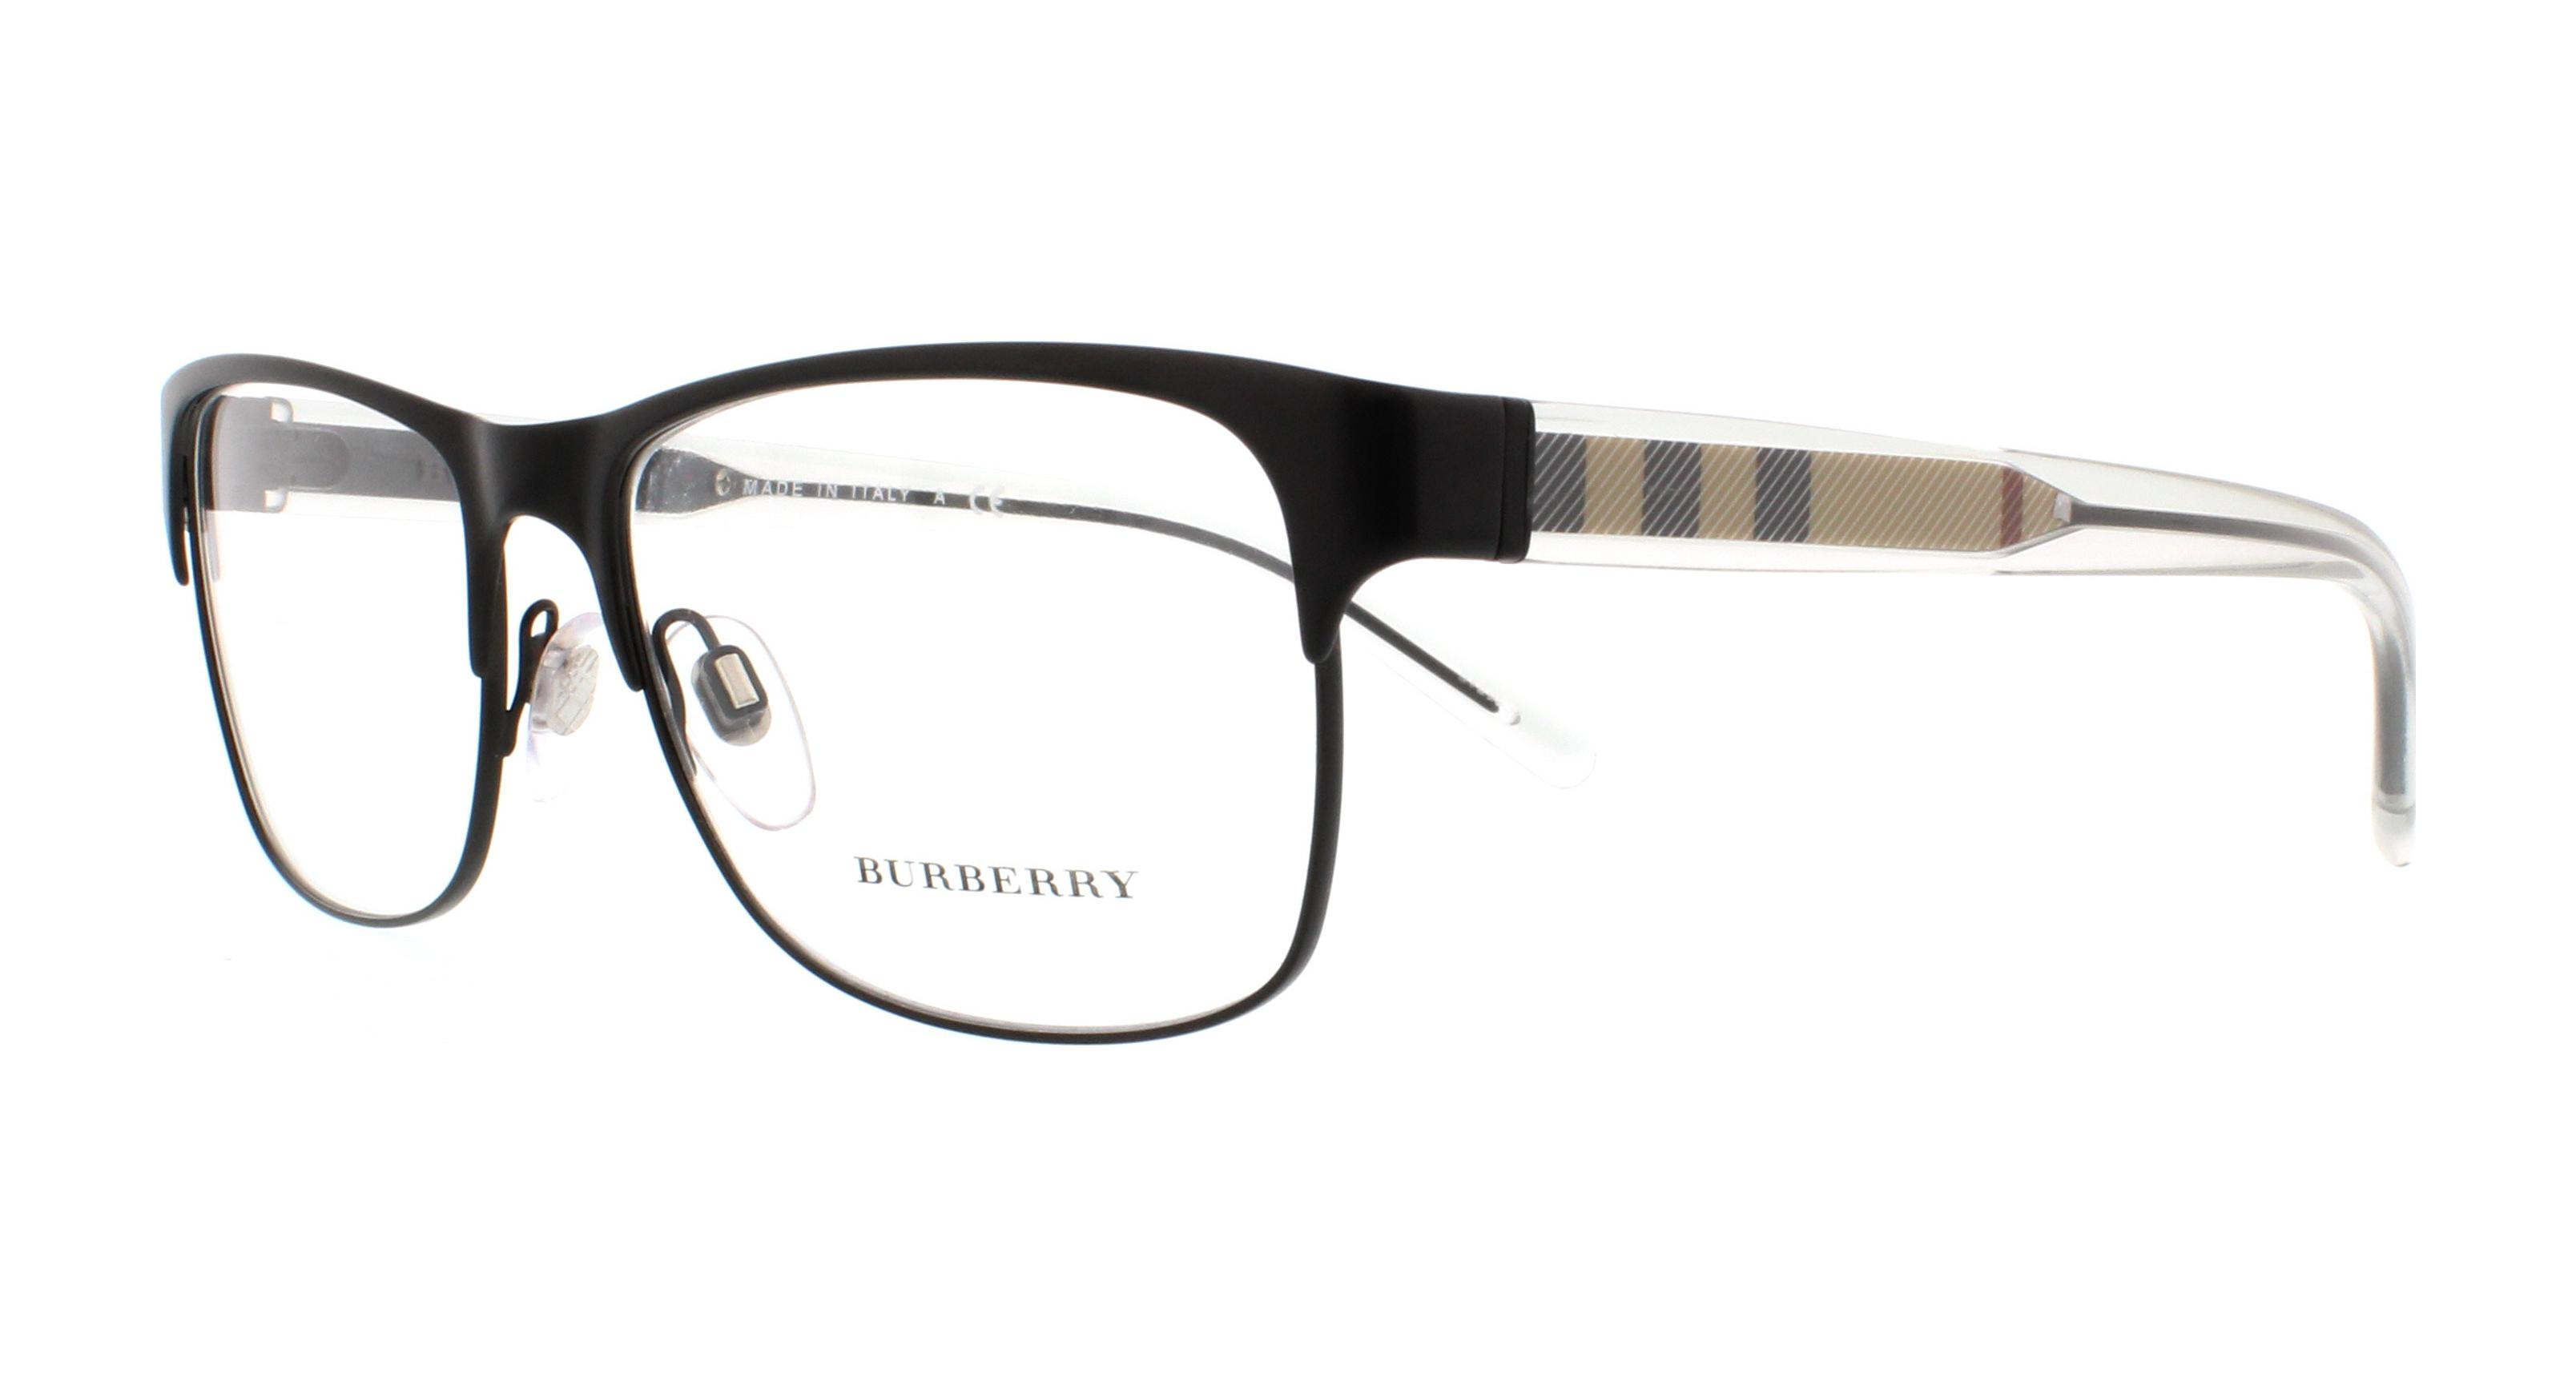 a266ceed31 Mens Burberry Glasses - Best Glasses Cnapracticetesting.Com 2018